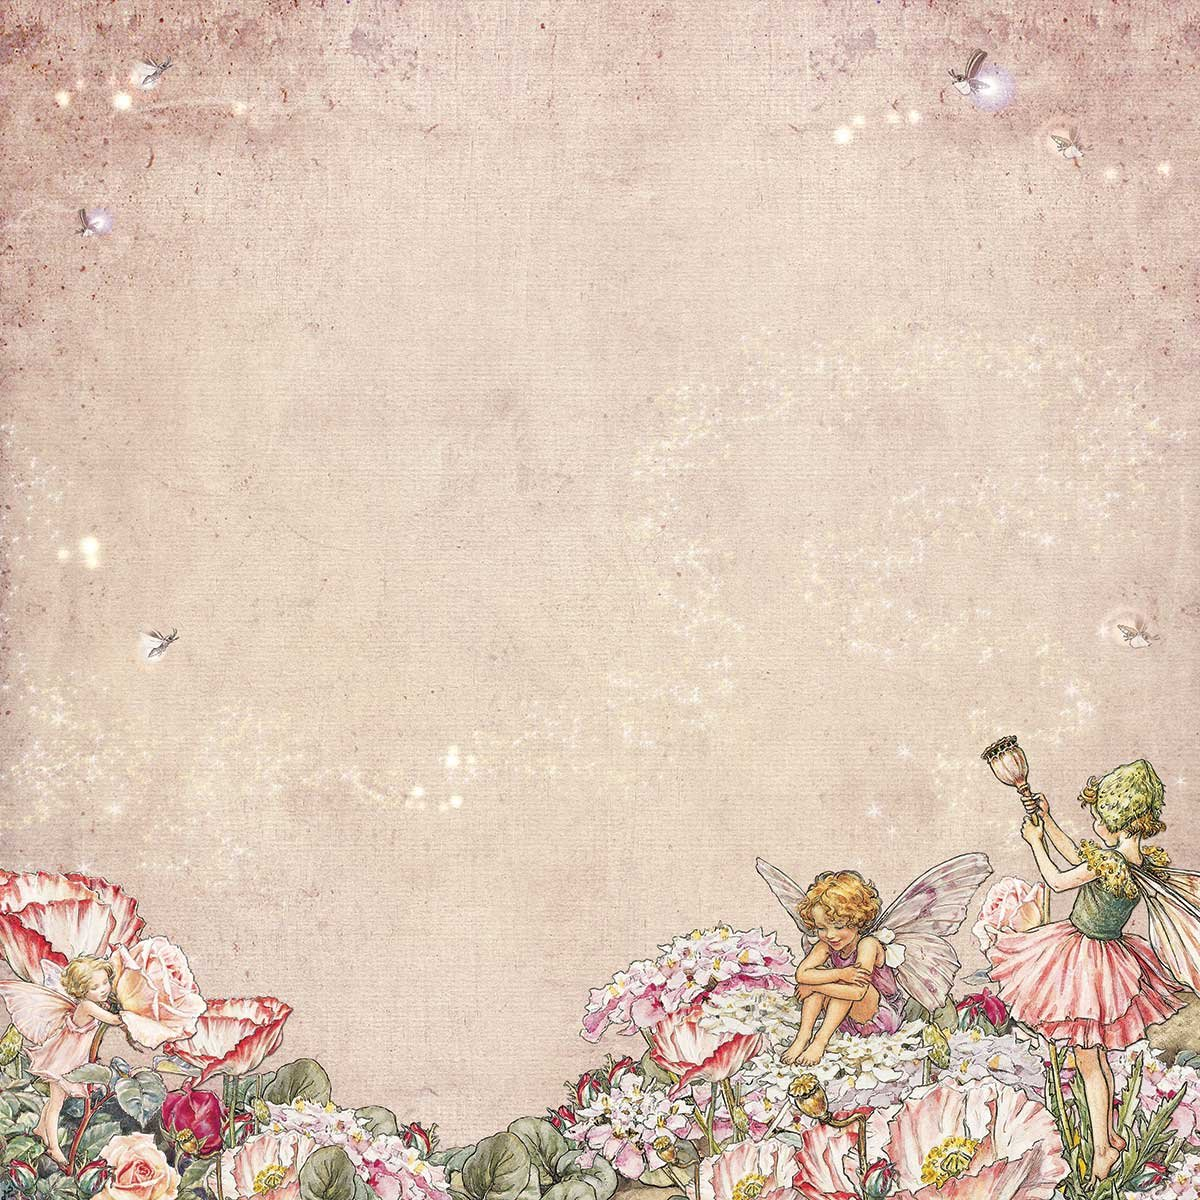 49 and Market Paper- Flower Fairies Looking Through: Twilight